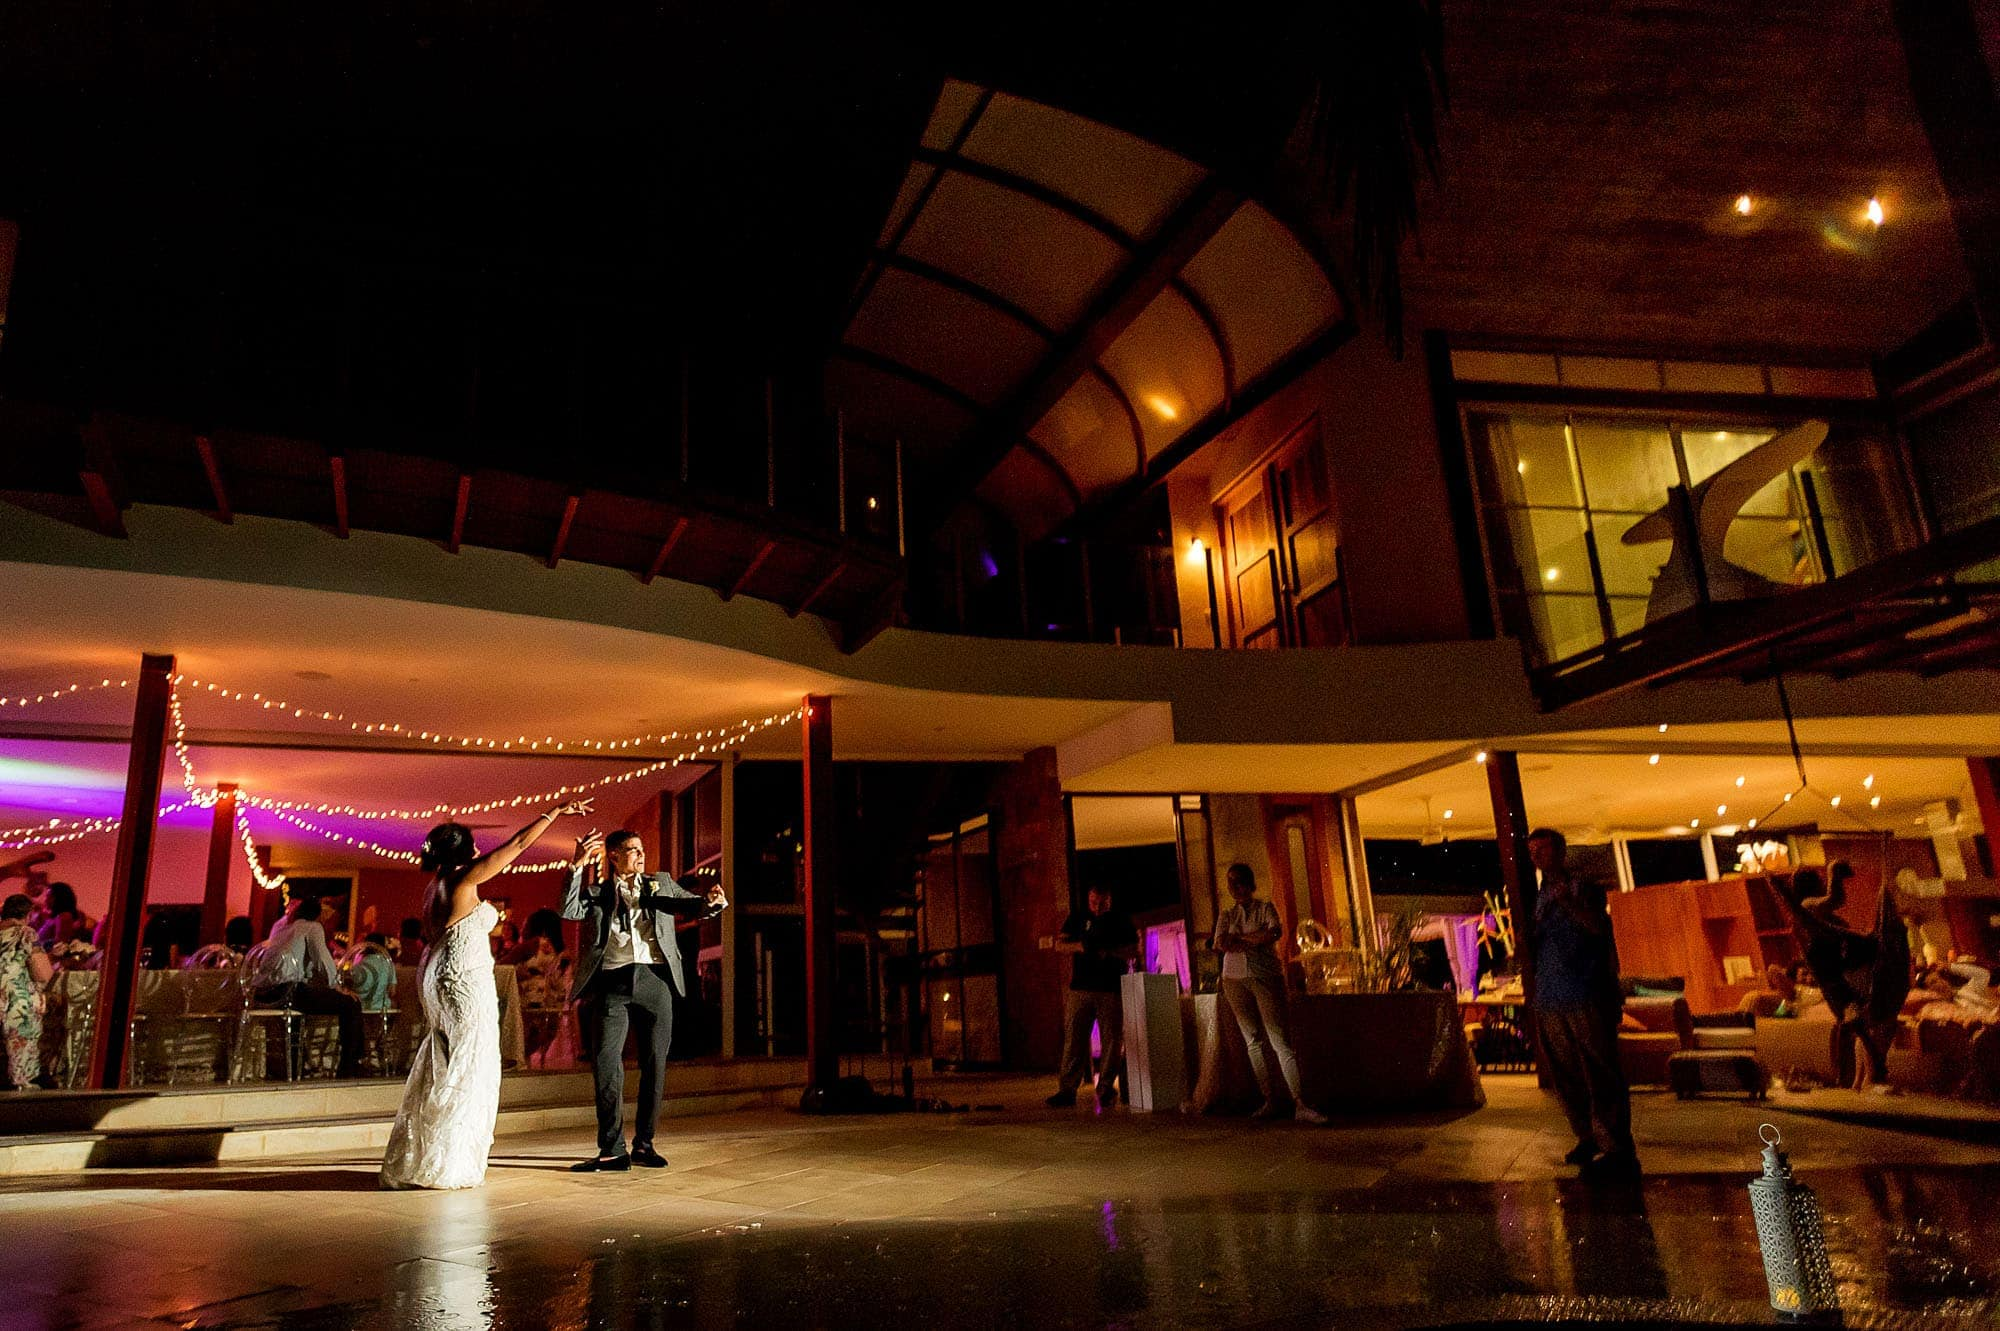 Wedding venue ideas: Check out this epic scene of the bride and groom